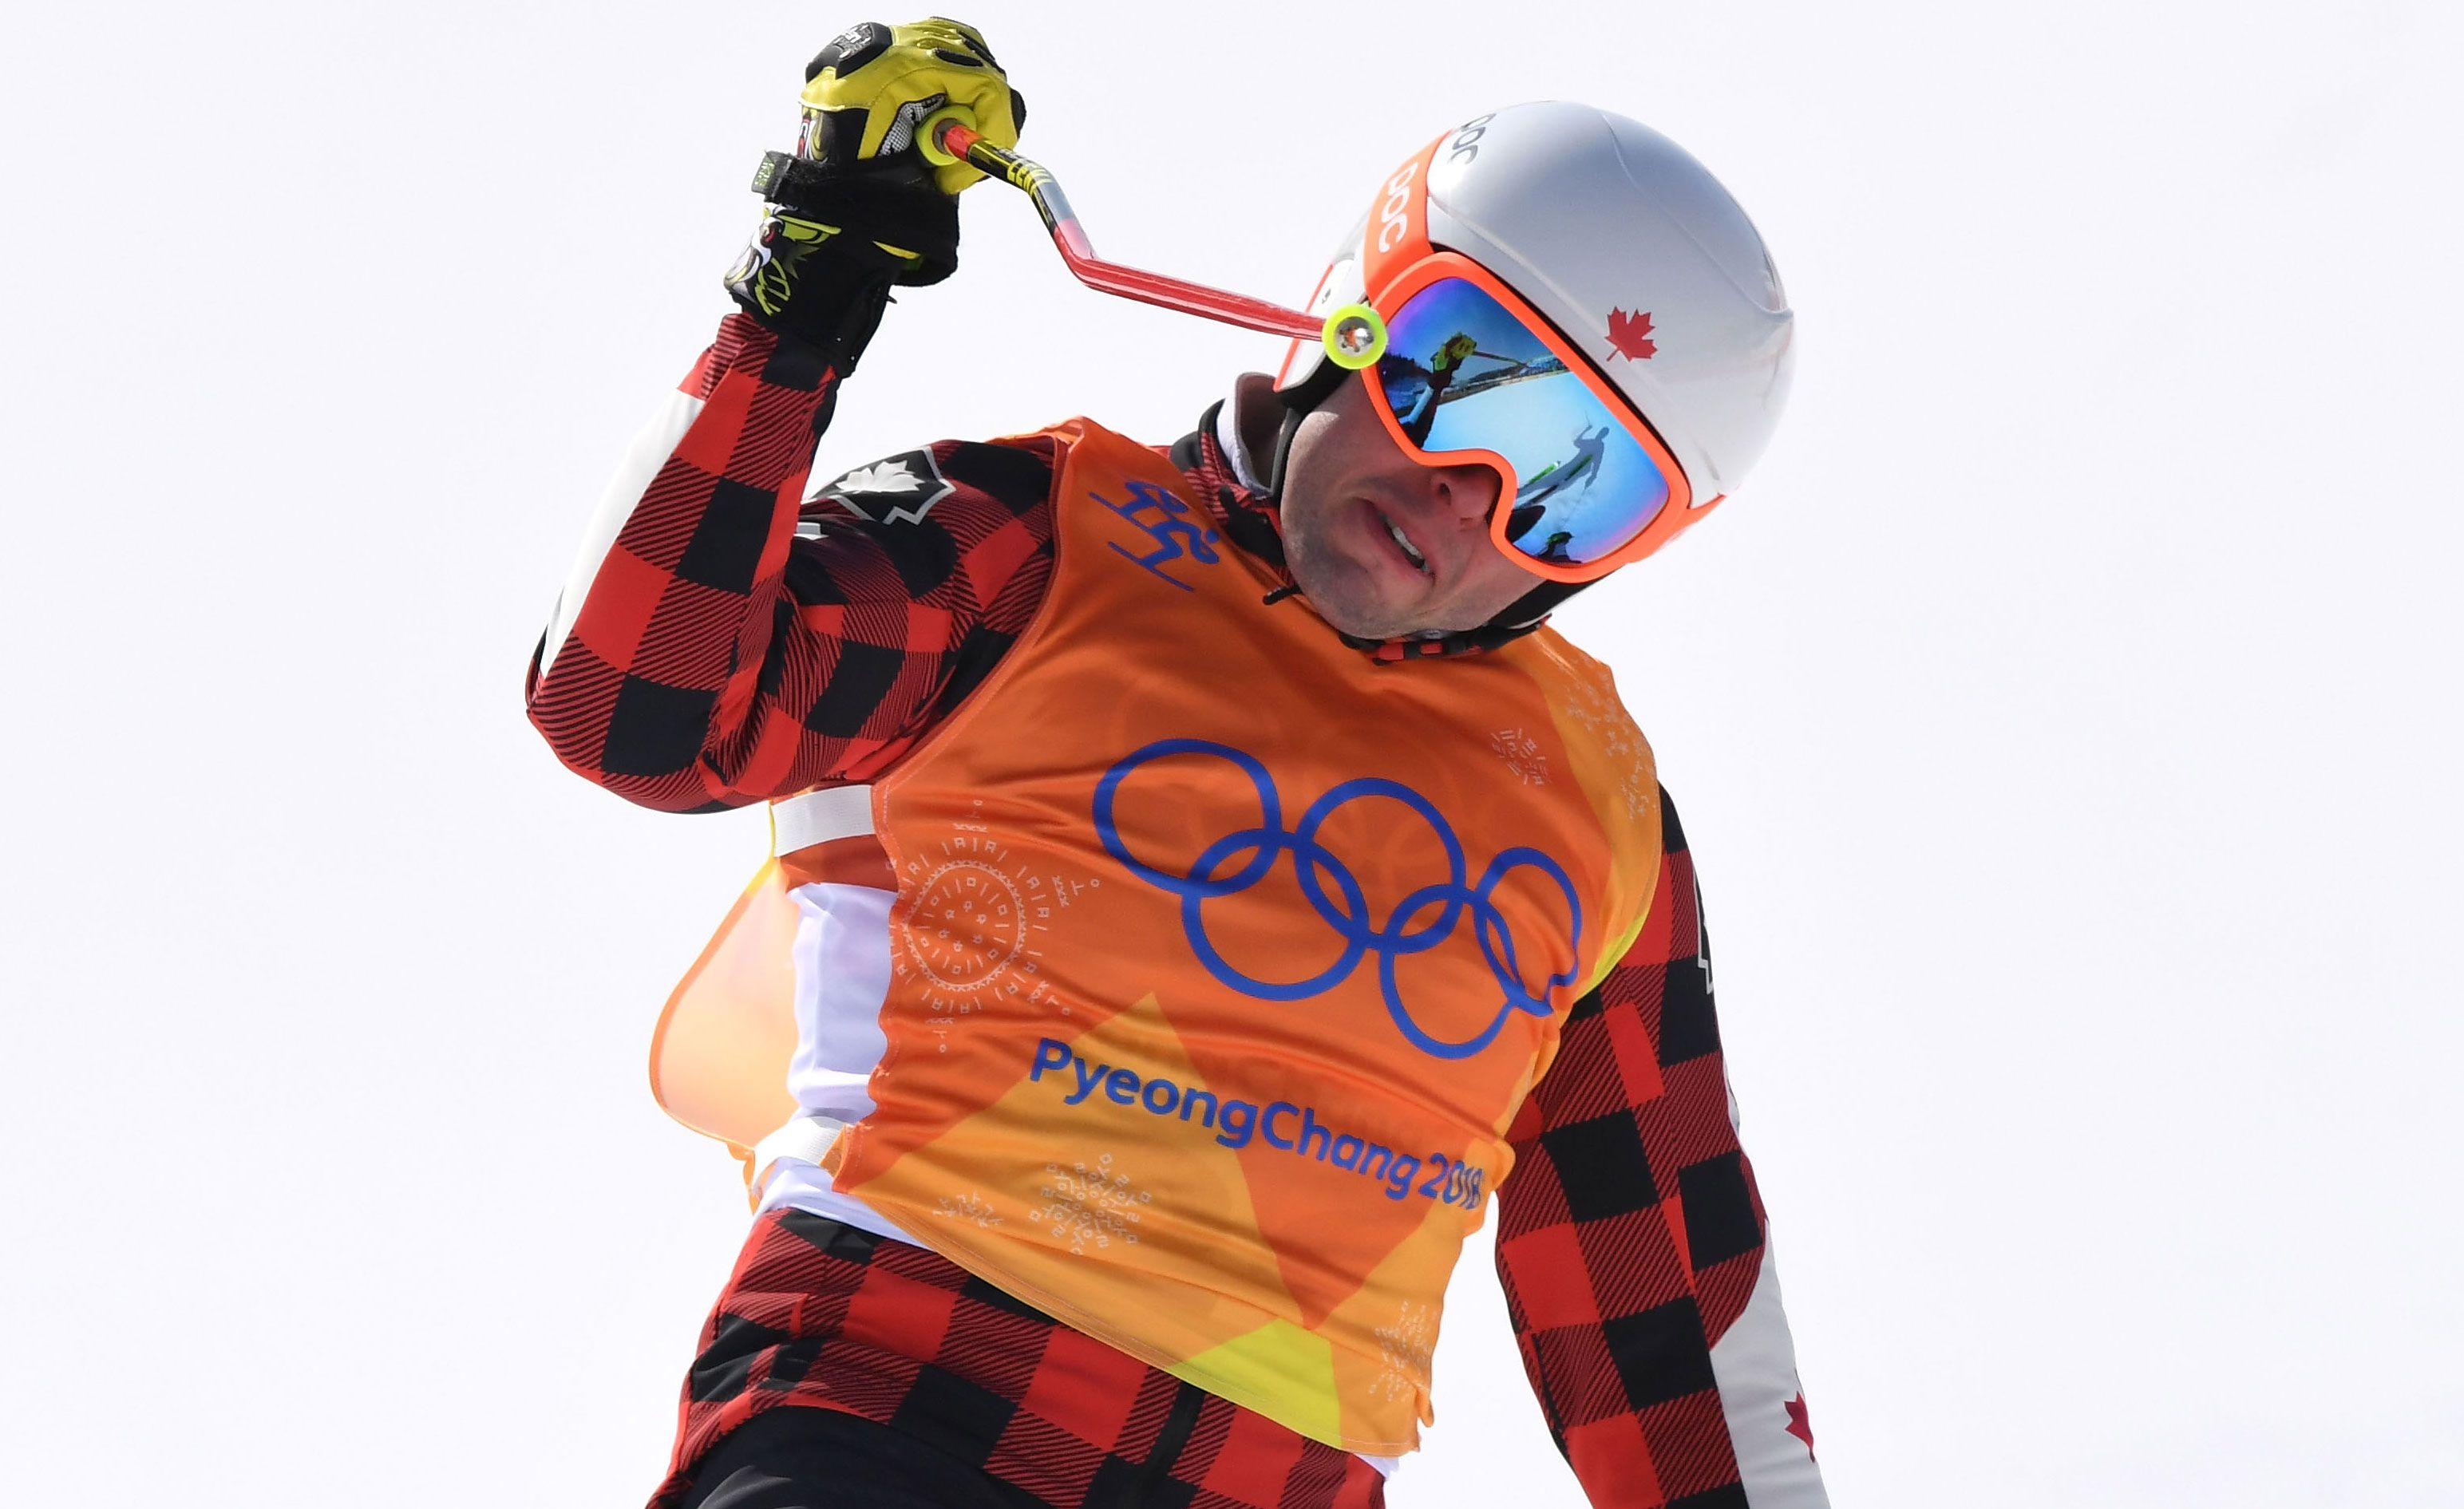 Canadian ski cross competitor Dave Duncan arrested at Winter Olympics